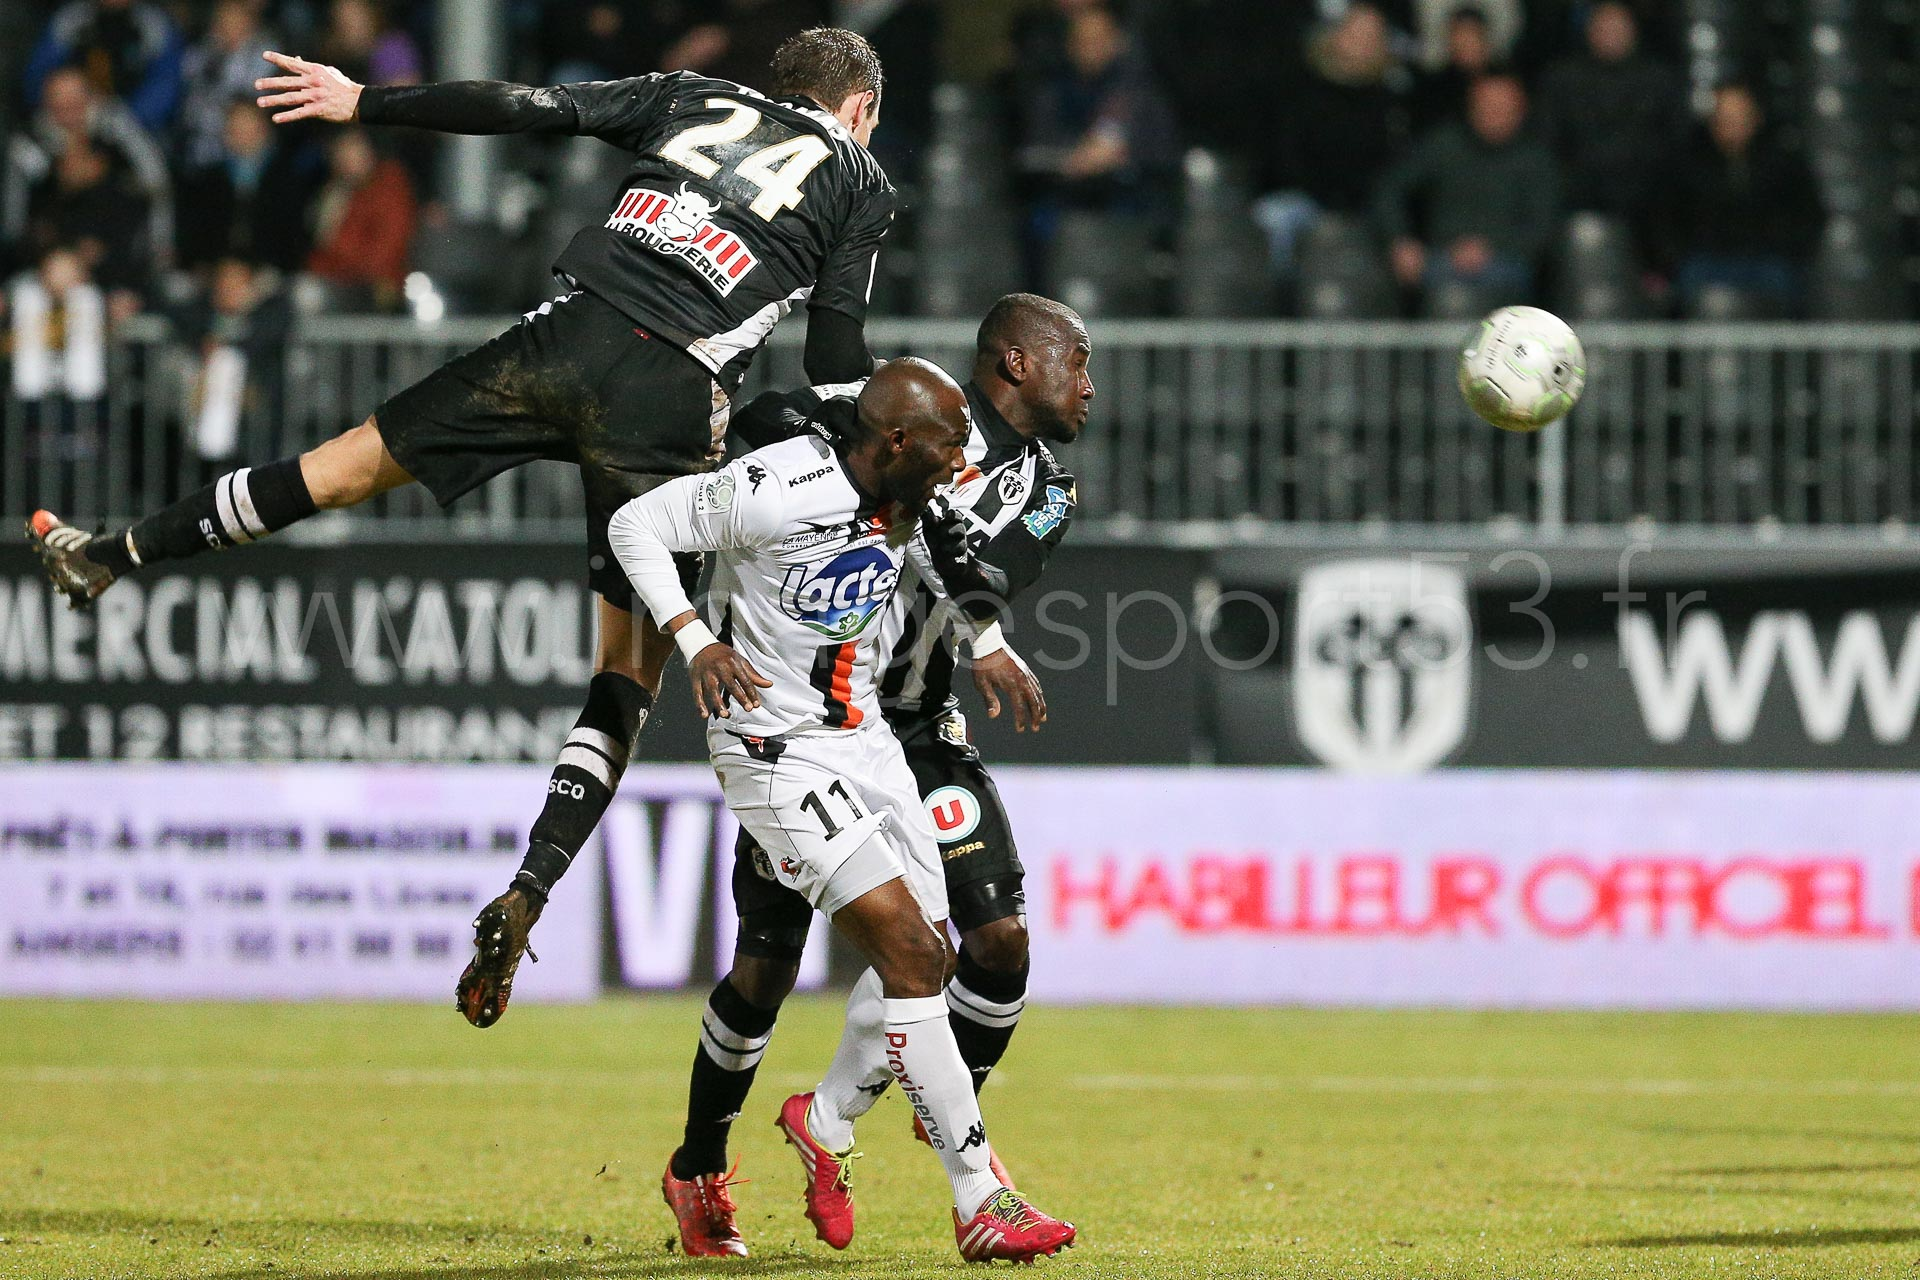 NG-Ligue2-1415-J25-Angers-Laval_19